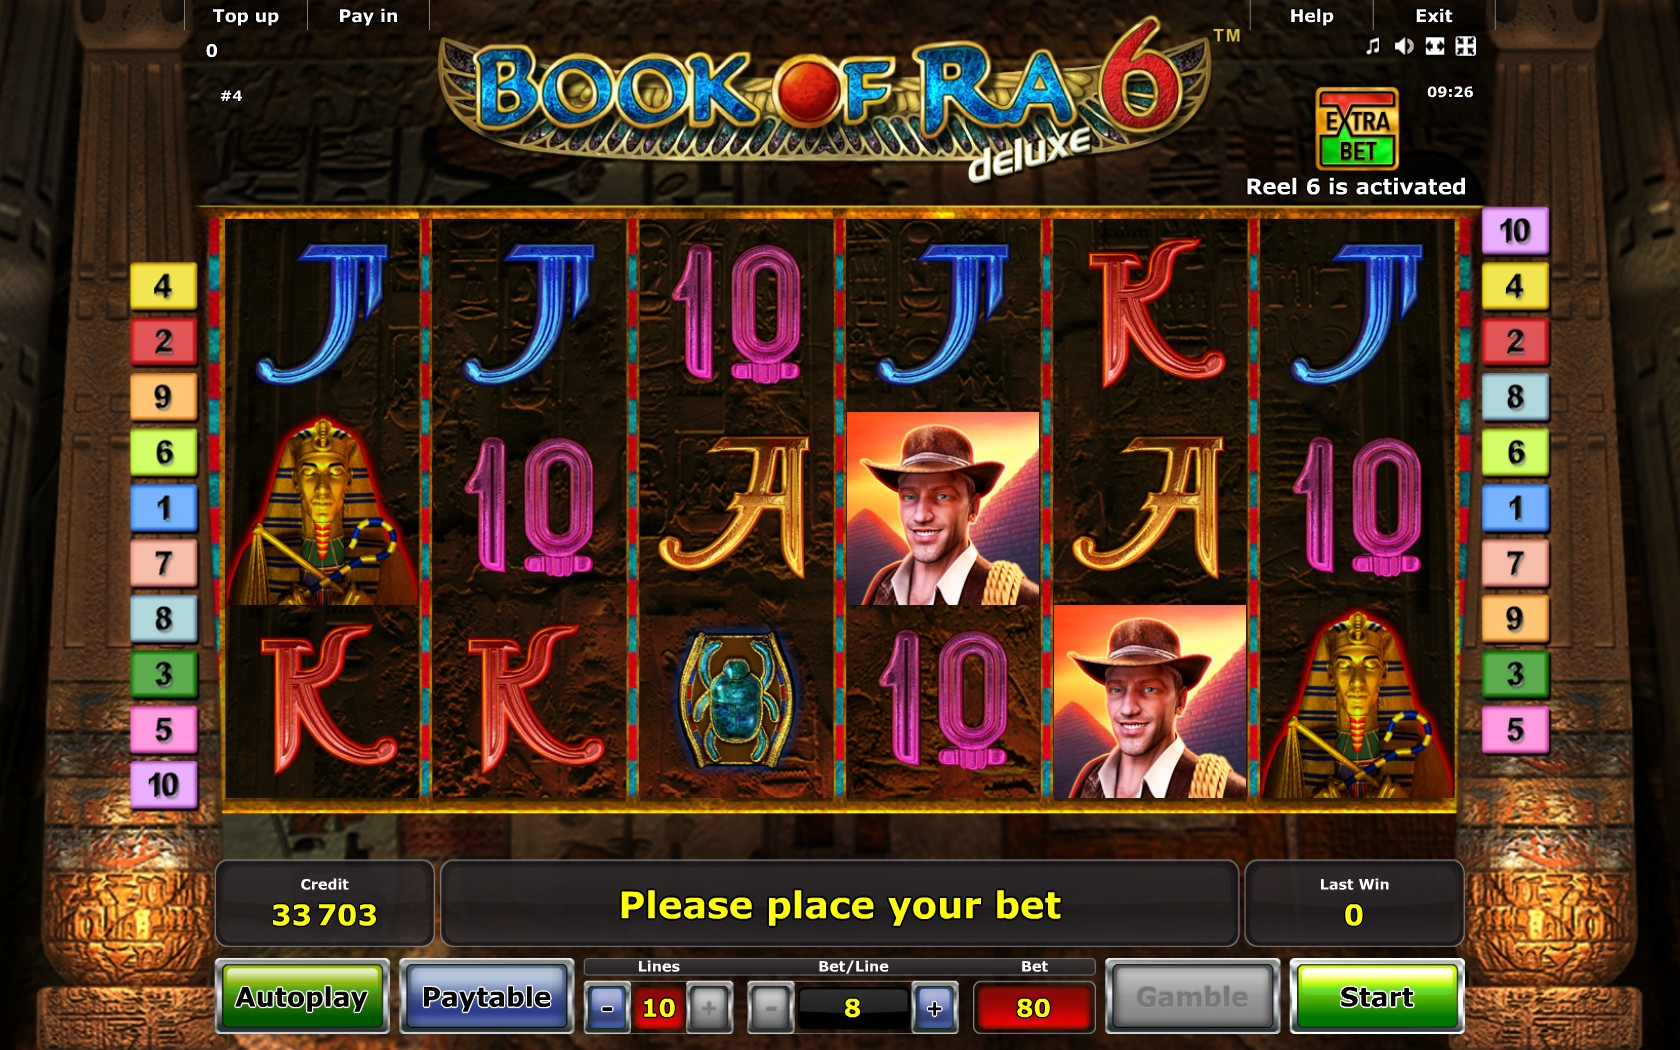 gambling casino online bonus casino book of ra